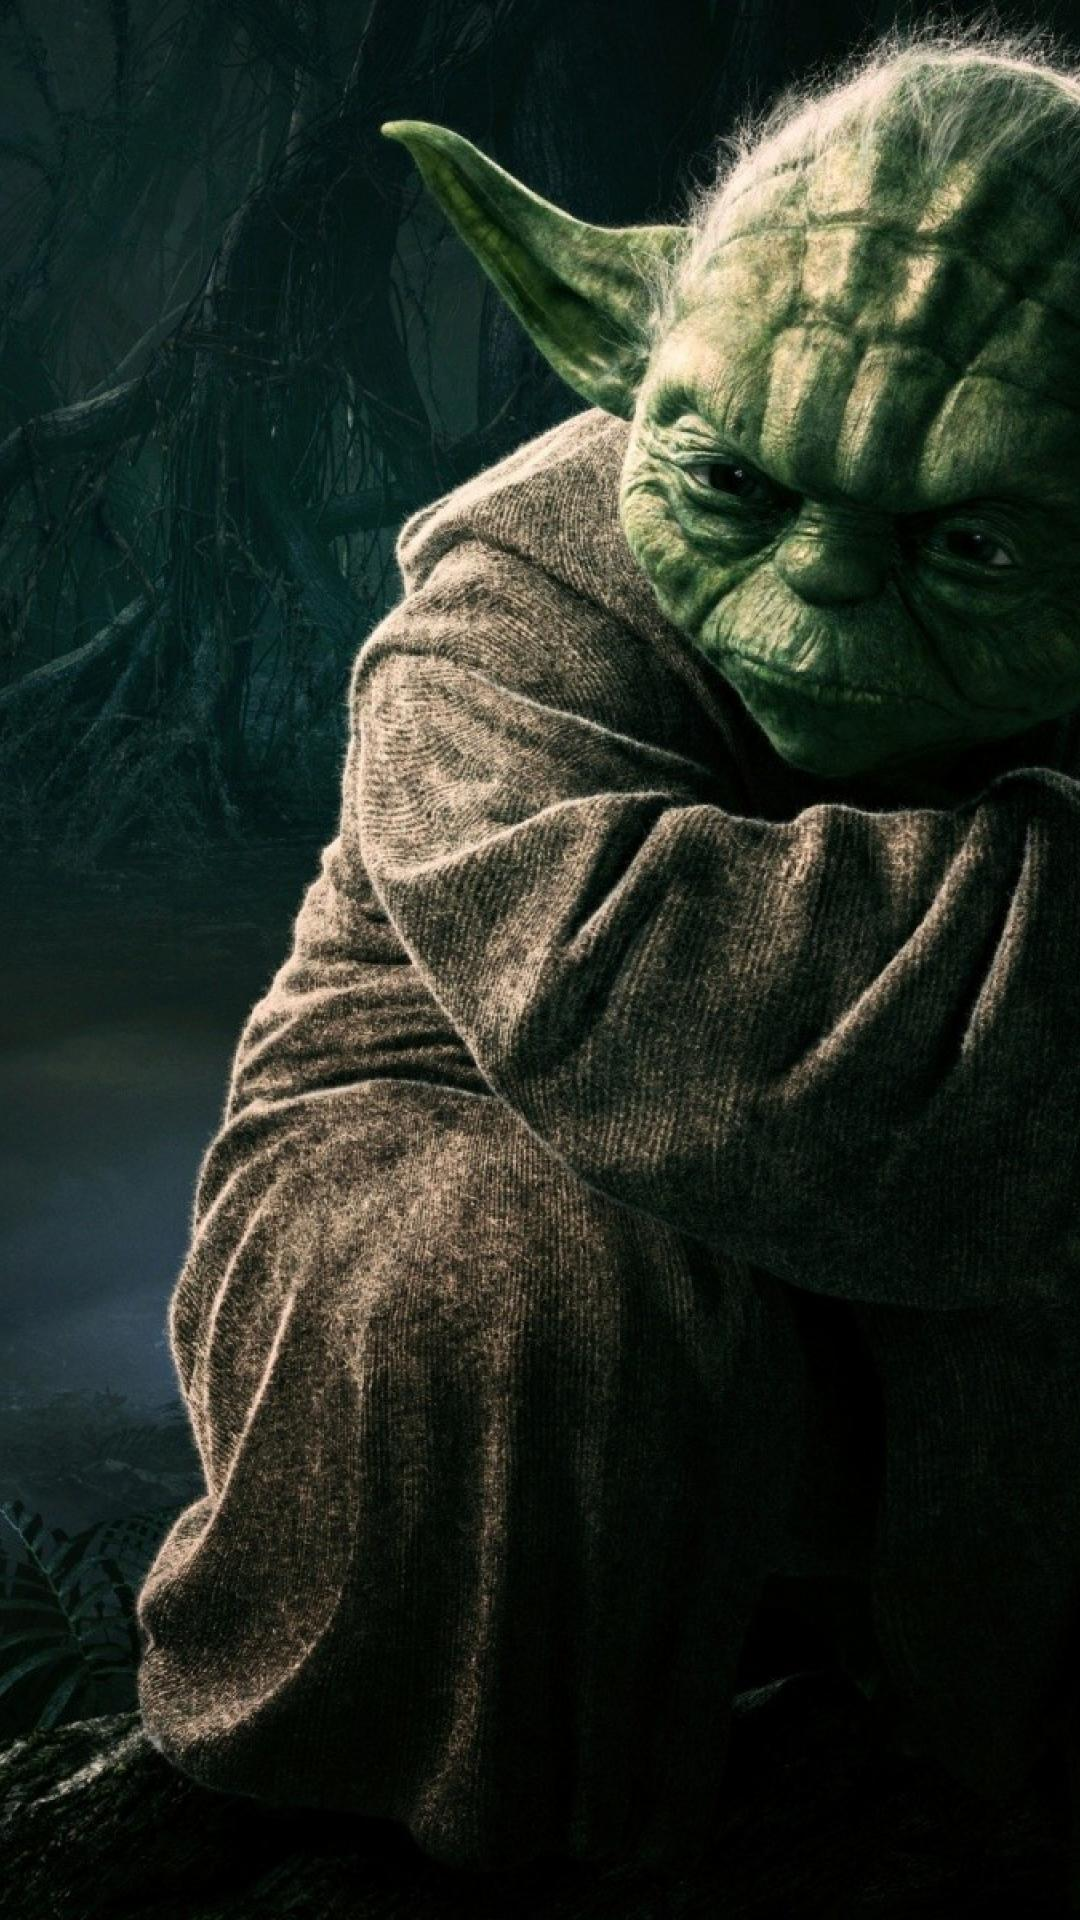 25 free star wars wallpapers for your iphone or android phone